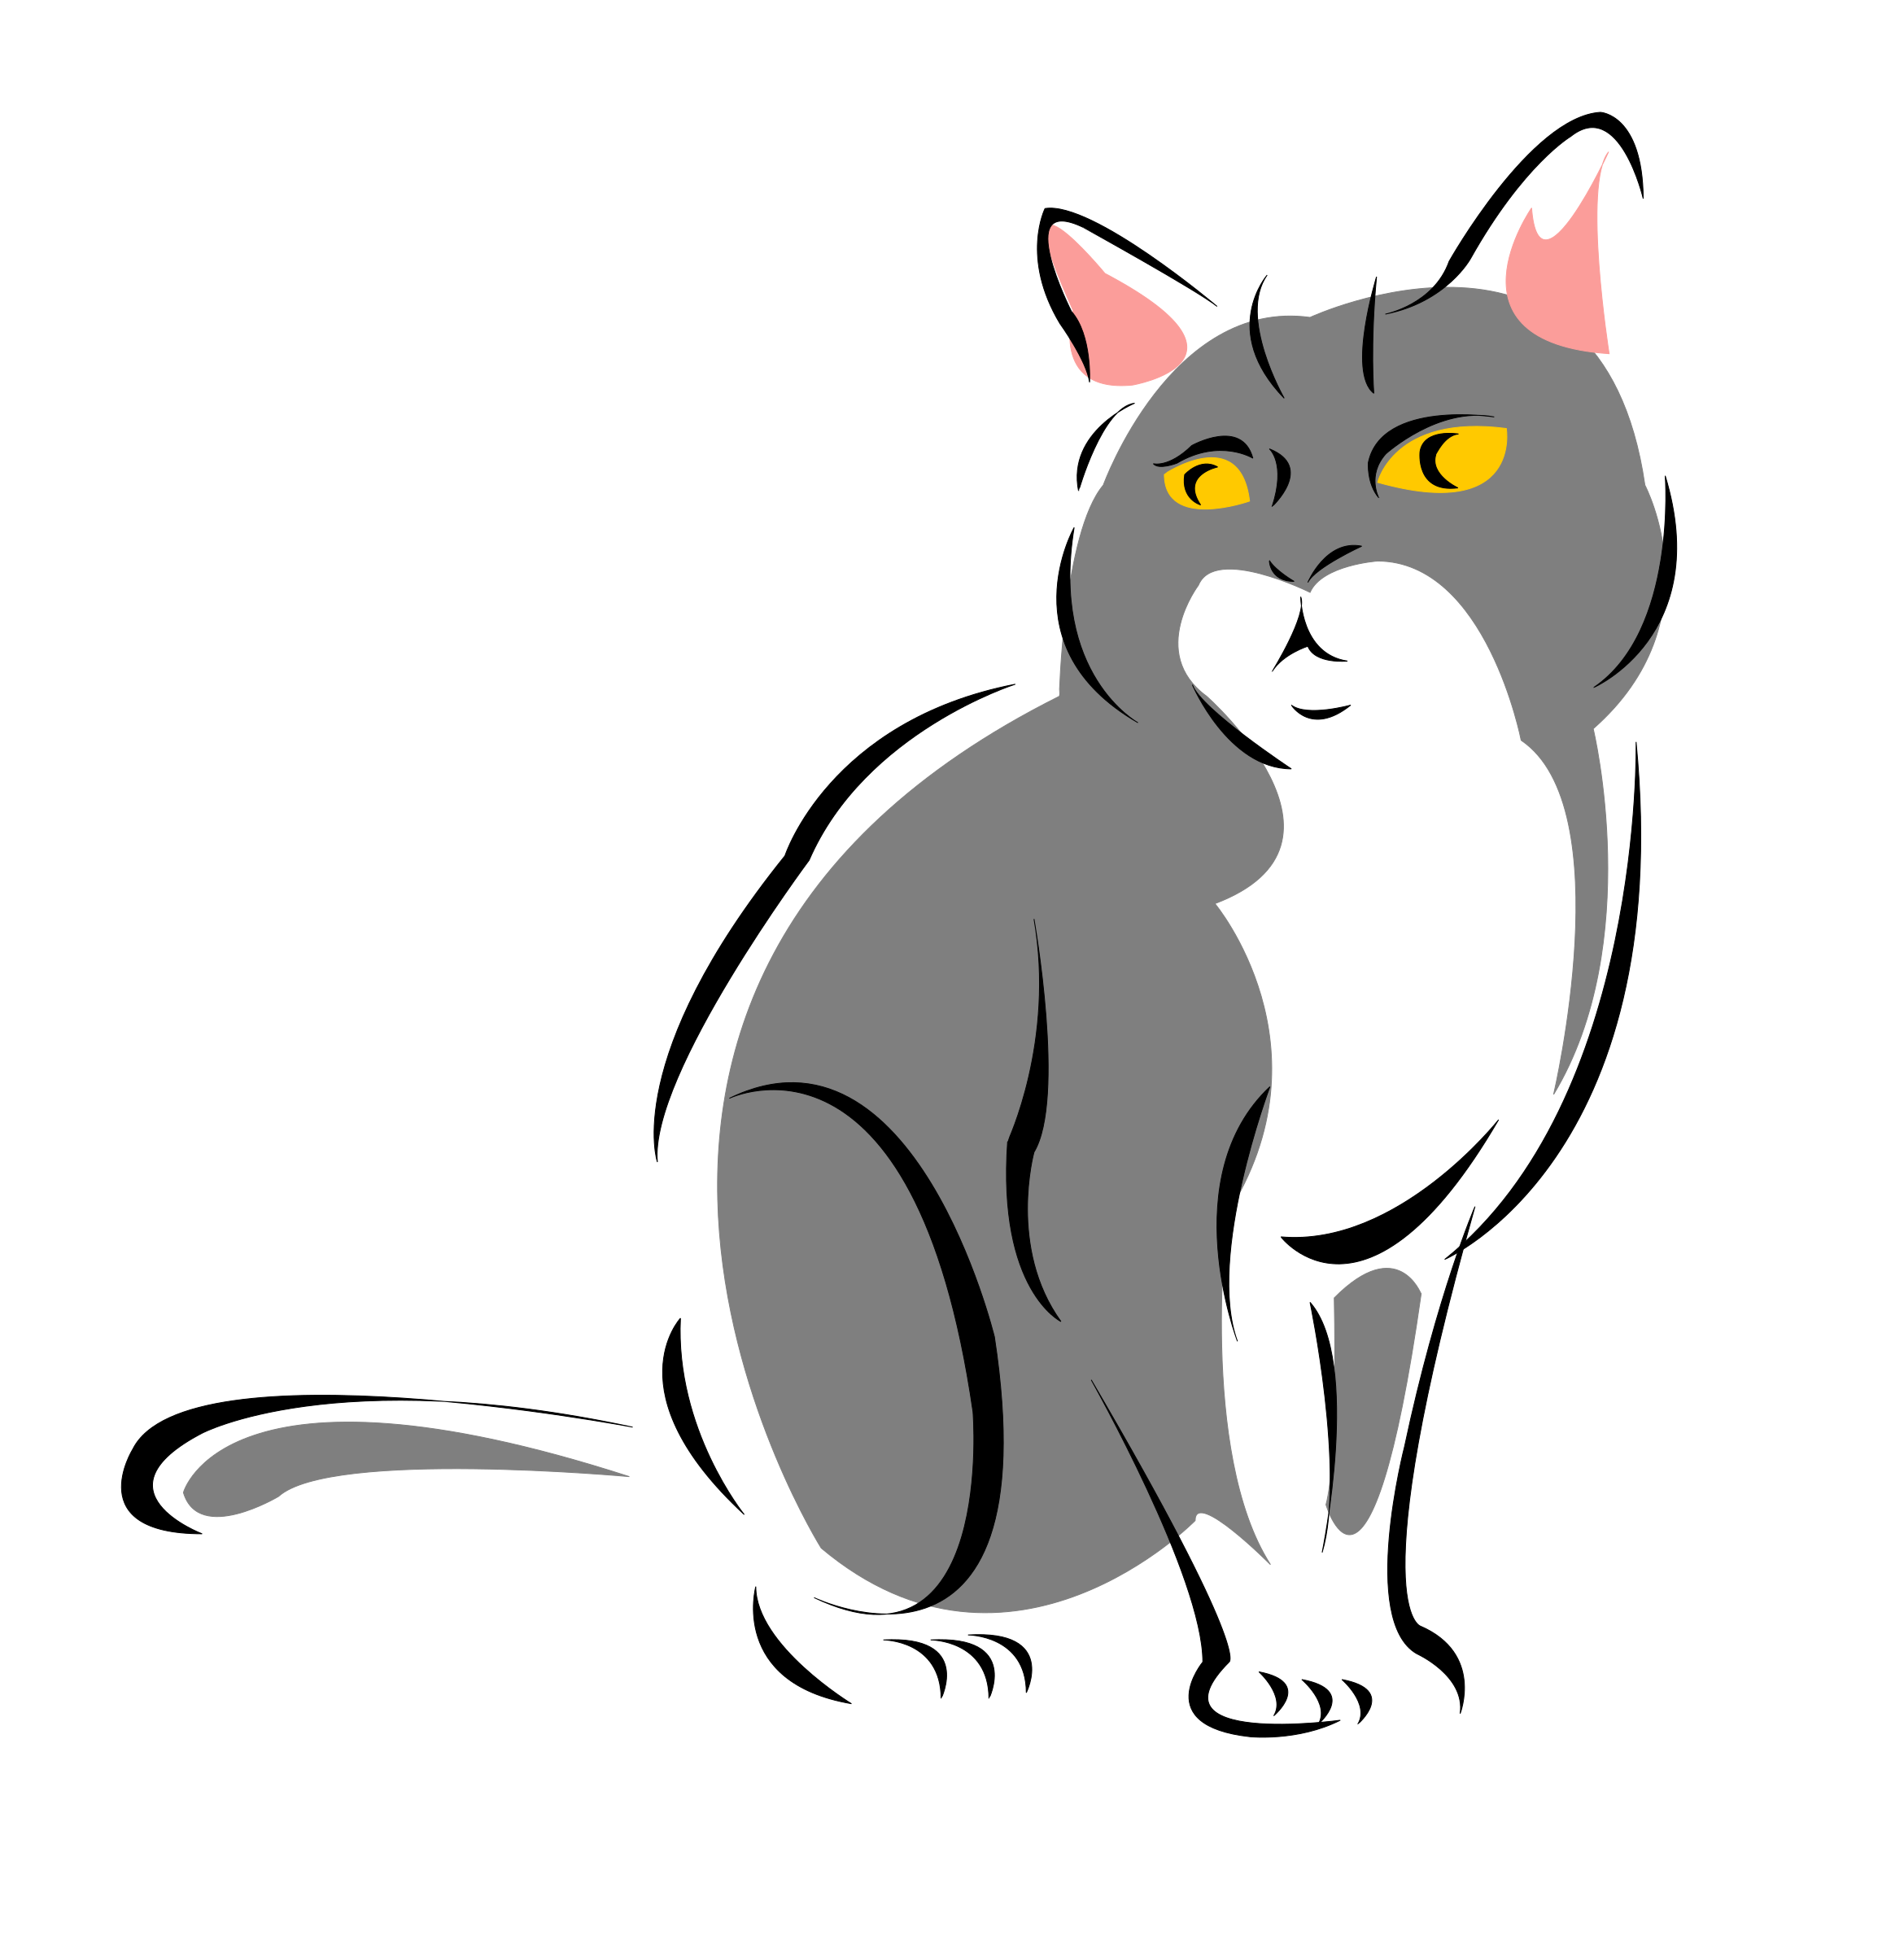 Grey cat clipart image transparent library Clipart - Grey cat image transparent library